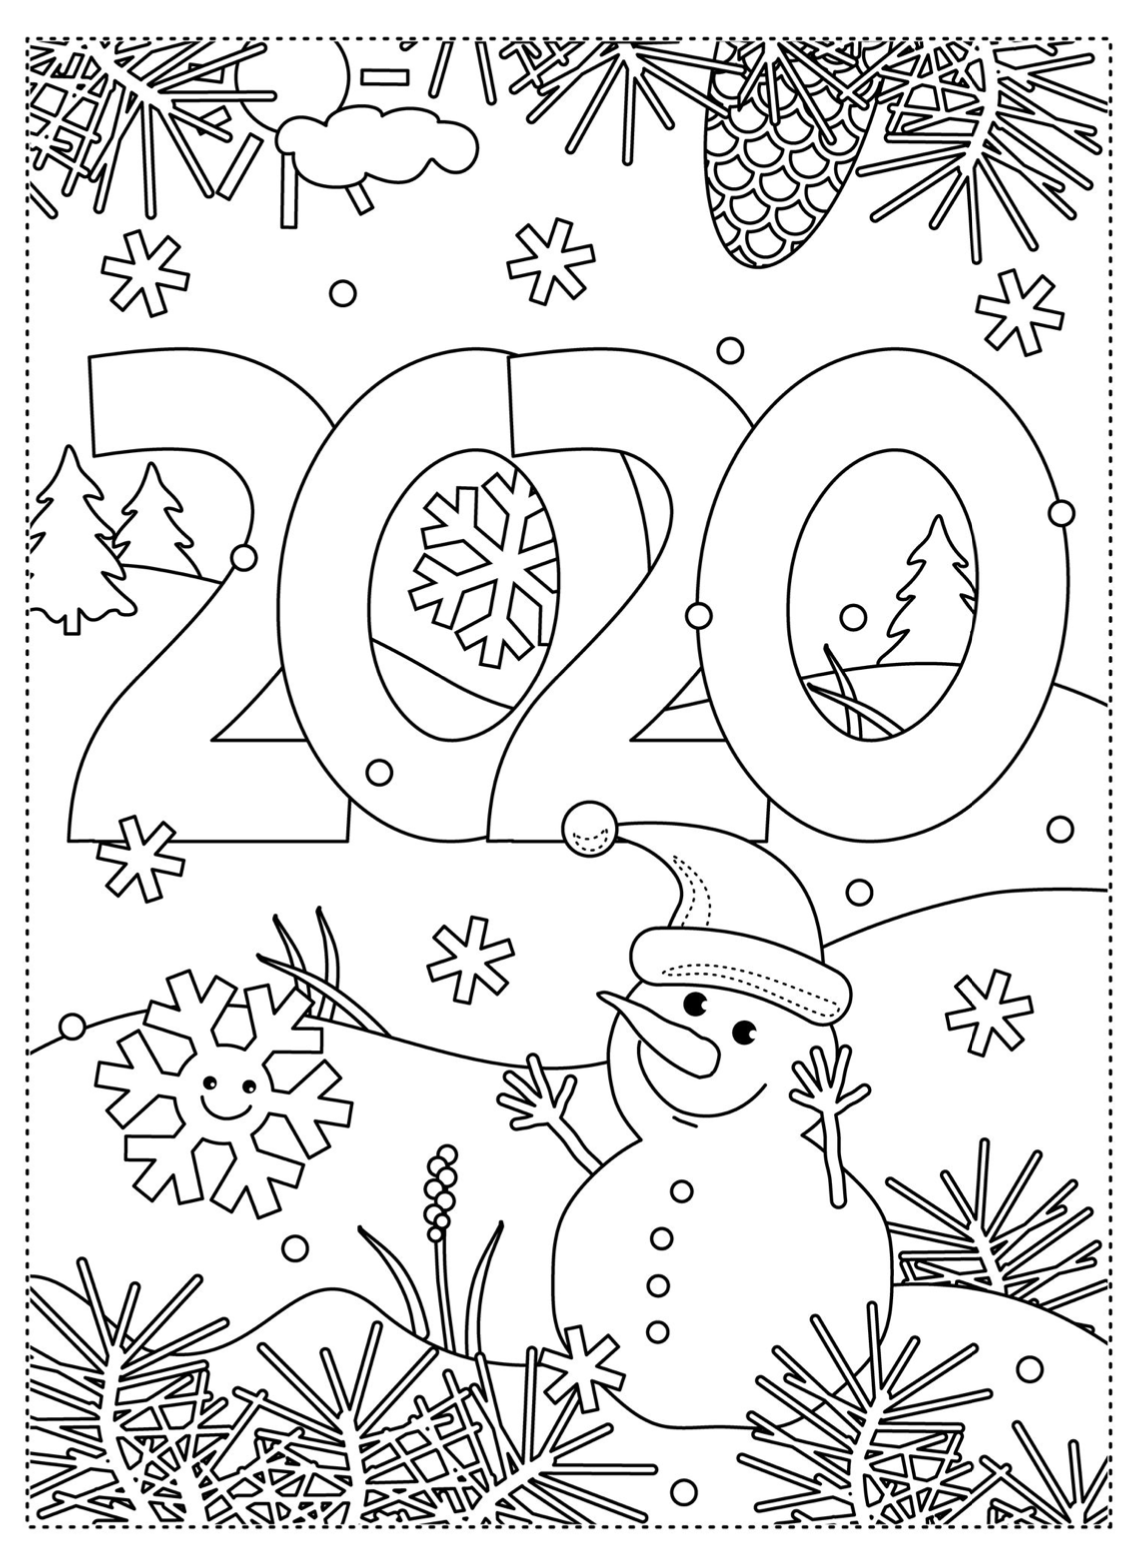 Coloring page 2020 • Miss Maike